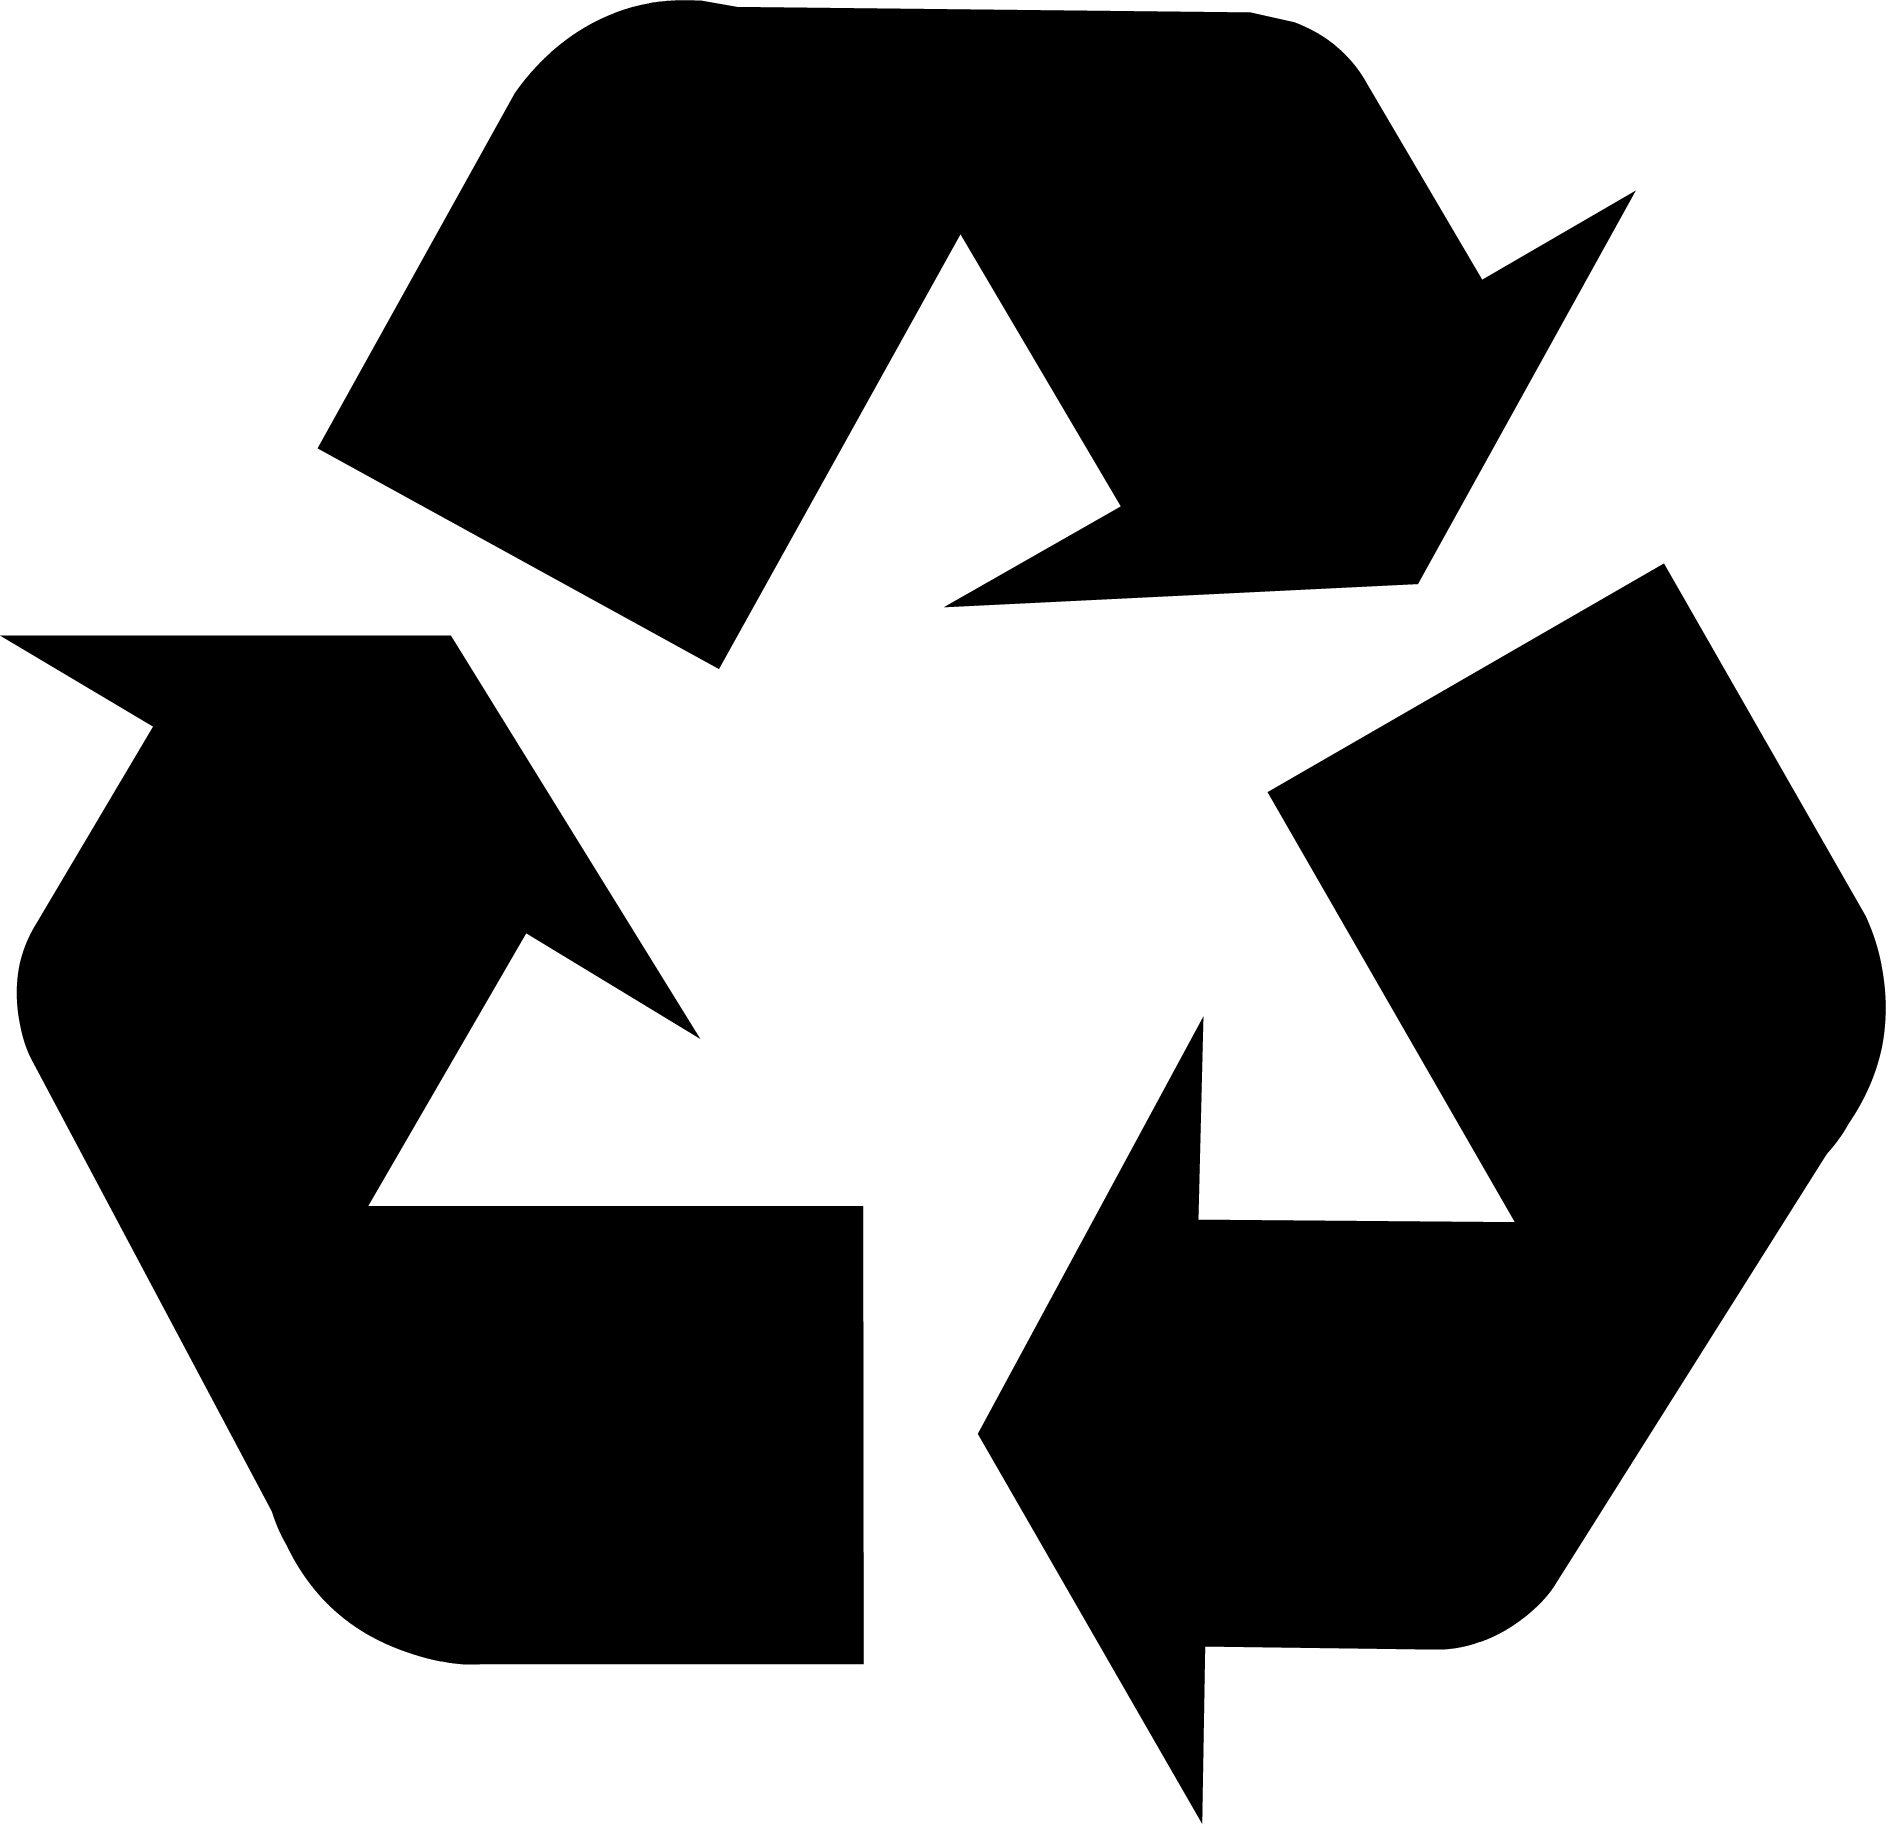 Recycling symbol download.